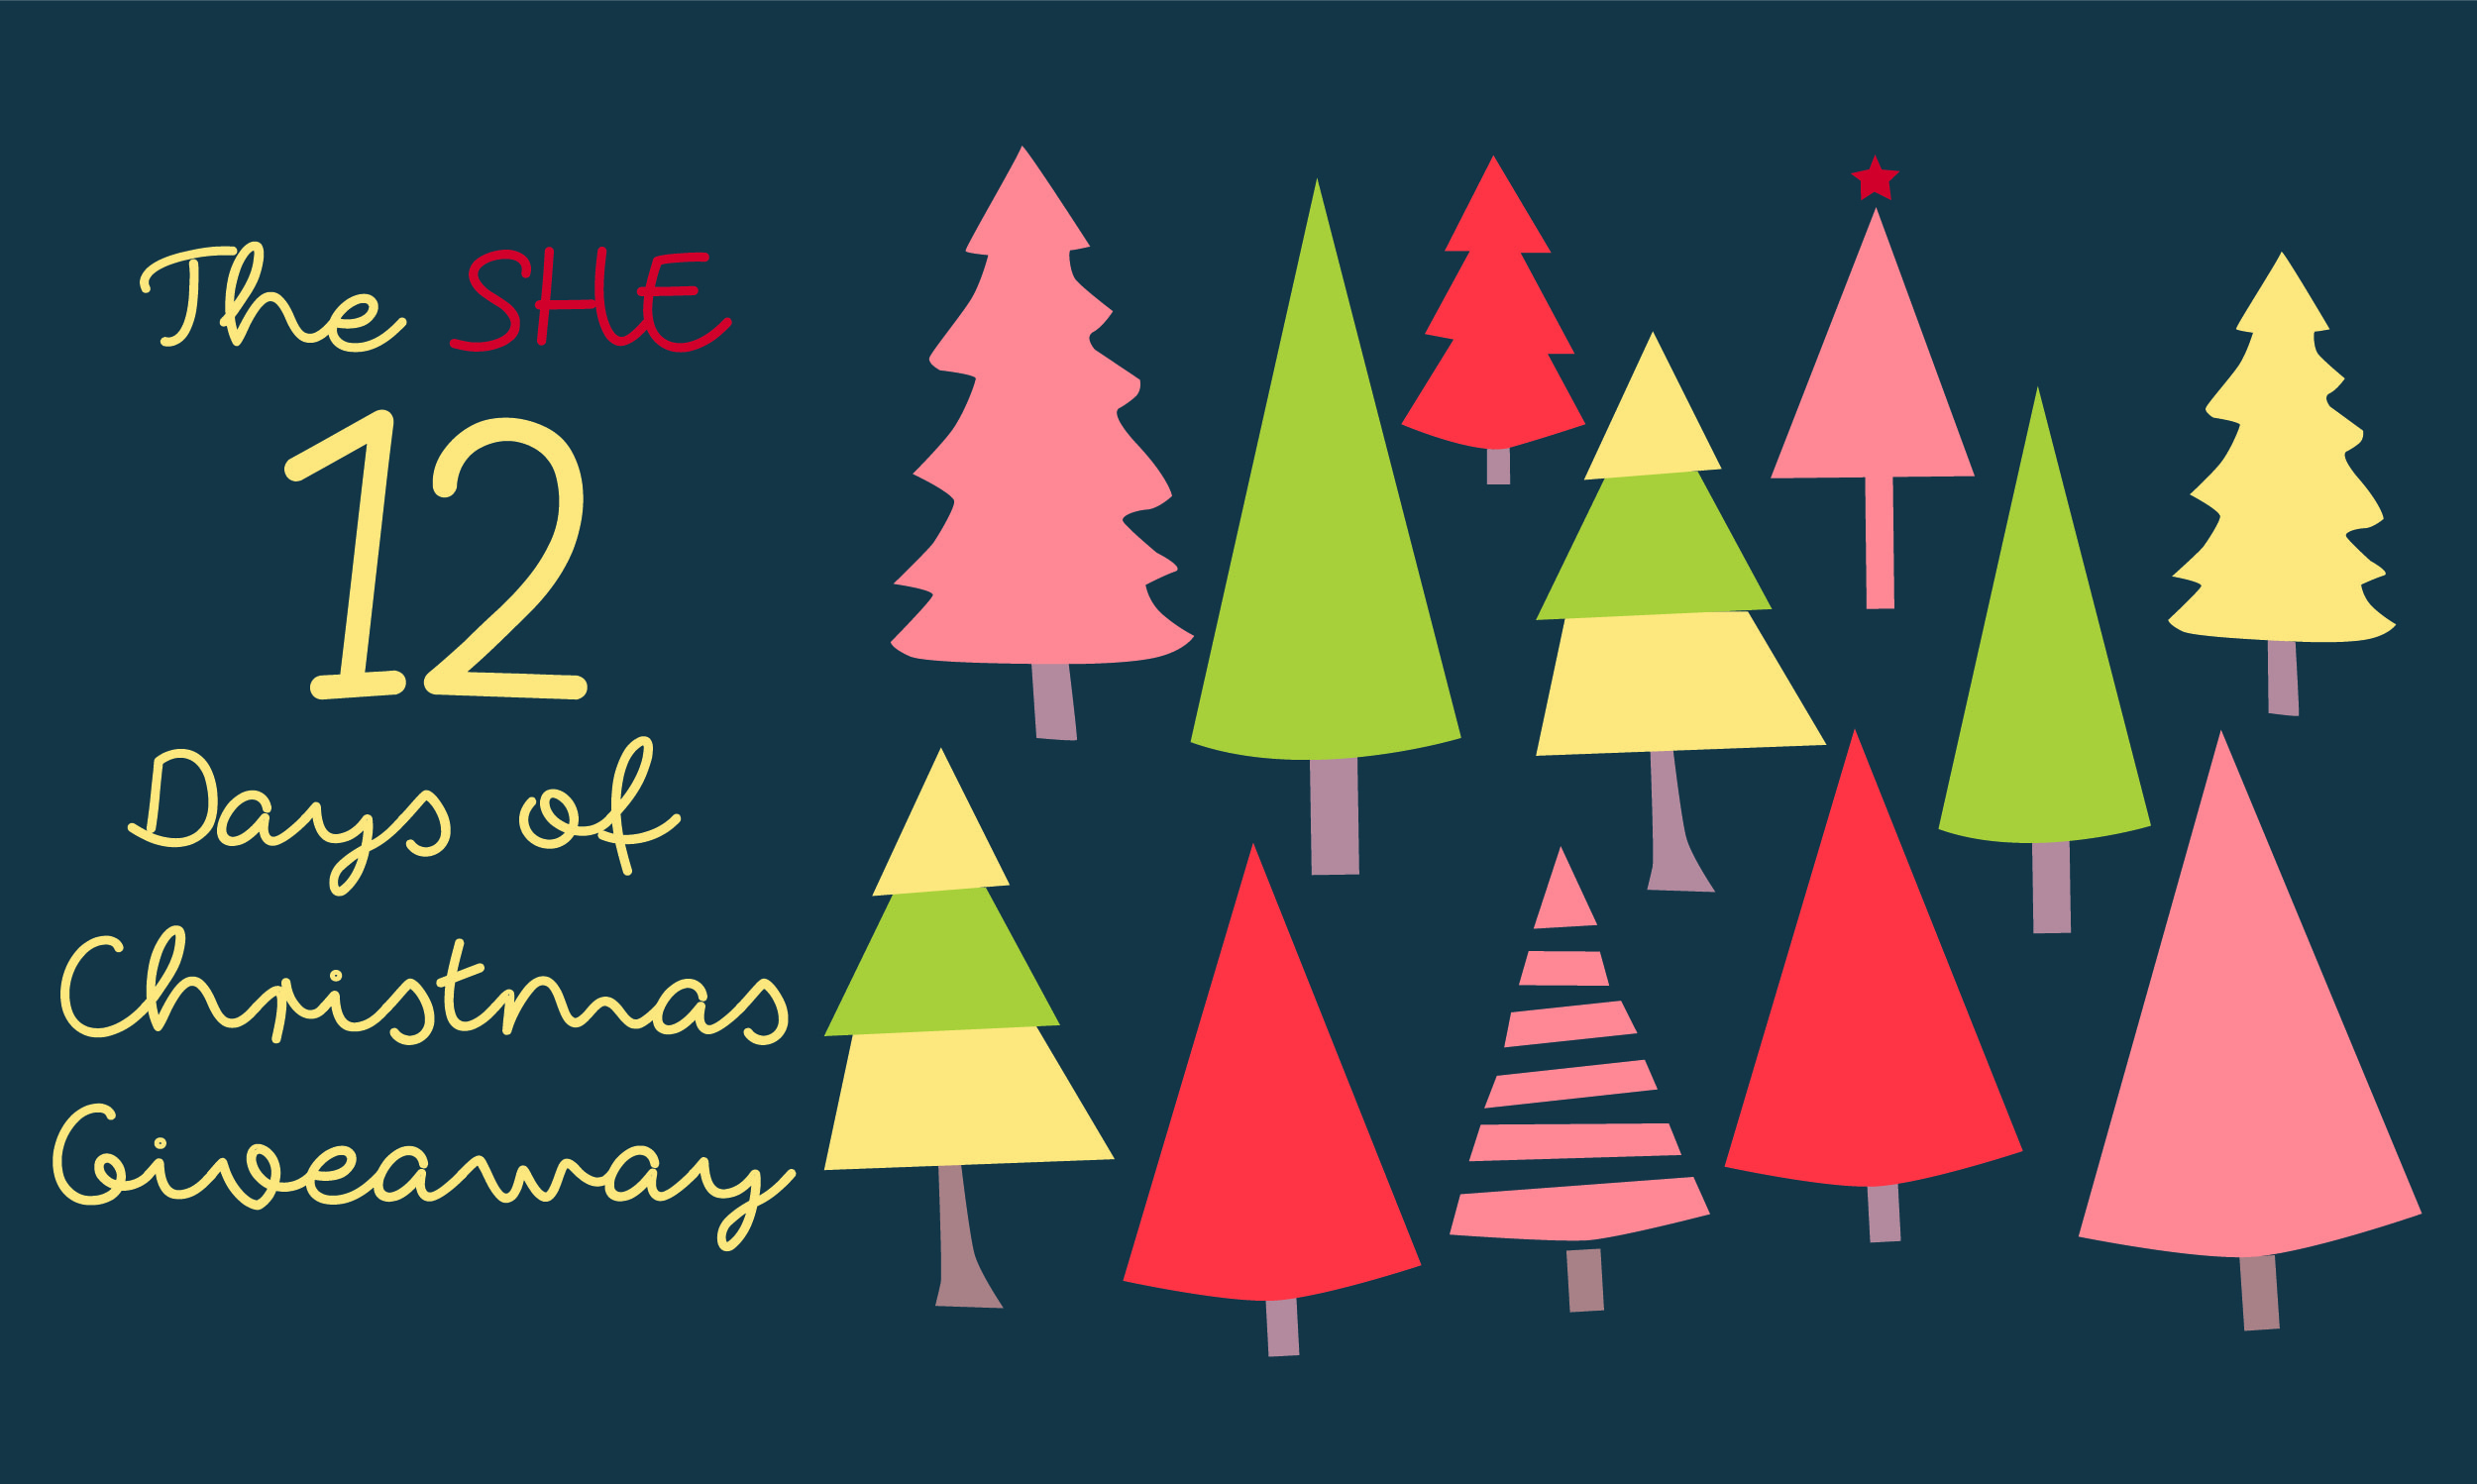 The SHE 12 Days of Christmas Giveaway